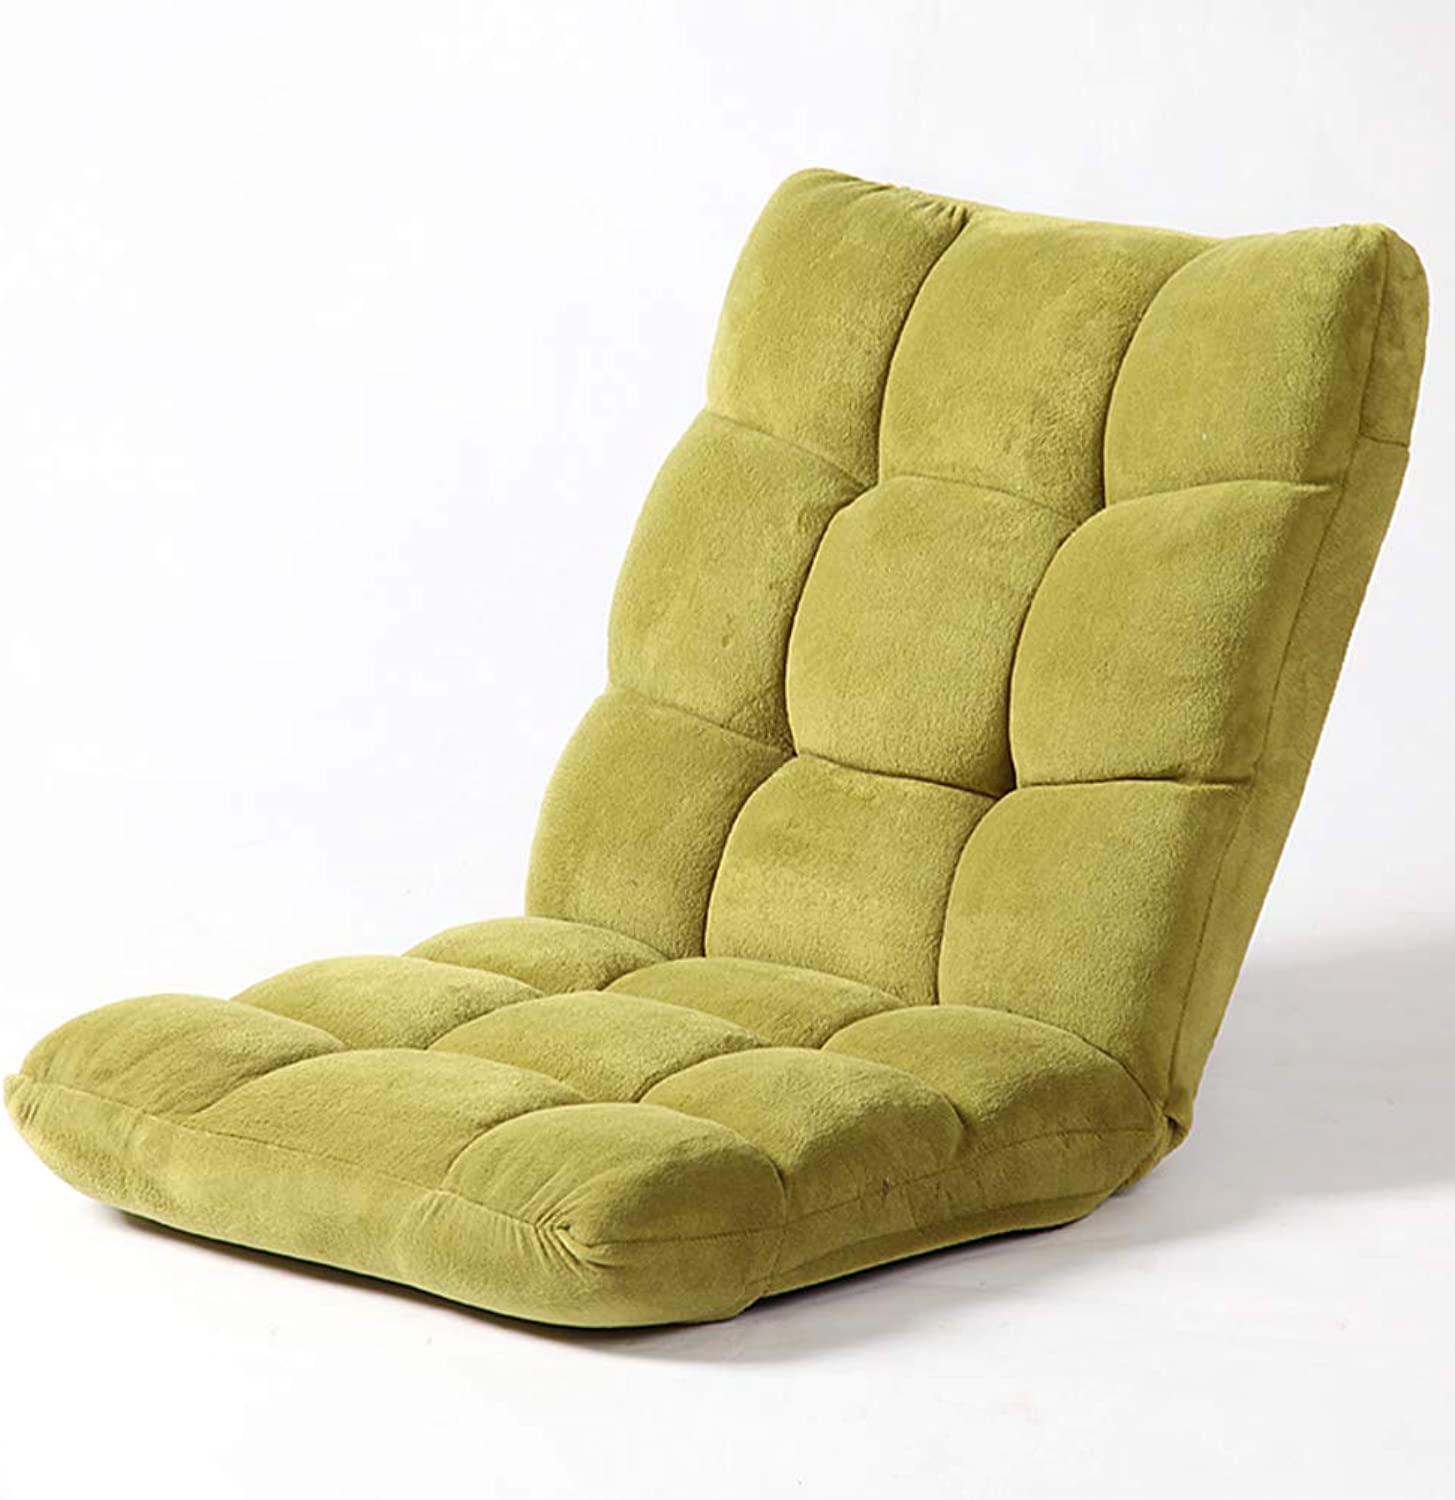 Padded Floor Chair,Cotton Adjustable 5-Position multiangle Cushioned Recliner Video-Gaming Reading Legless Floor Chair -Green 44x55cm(17x22inch)